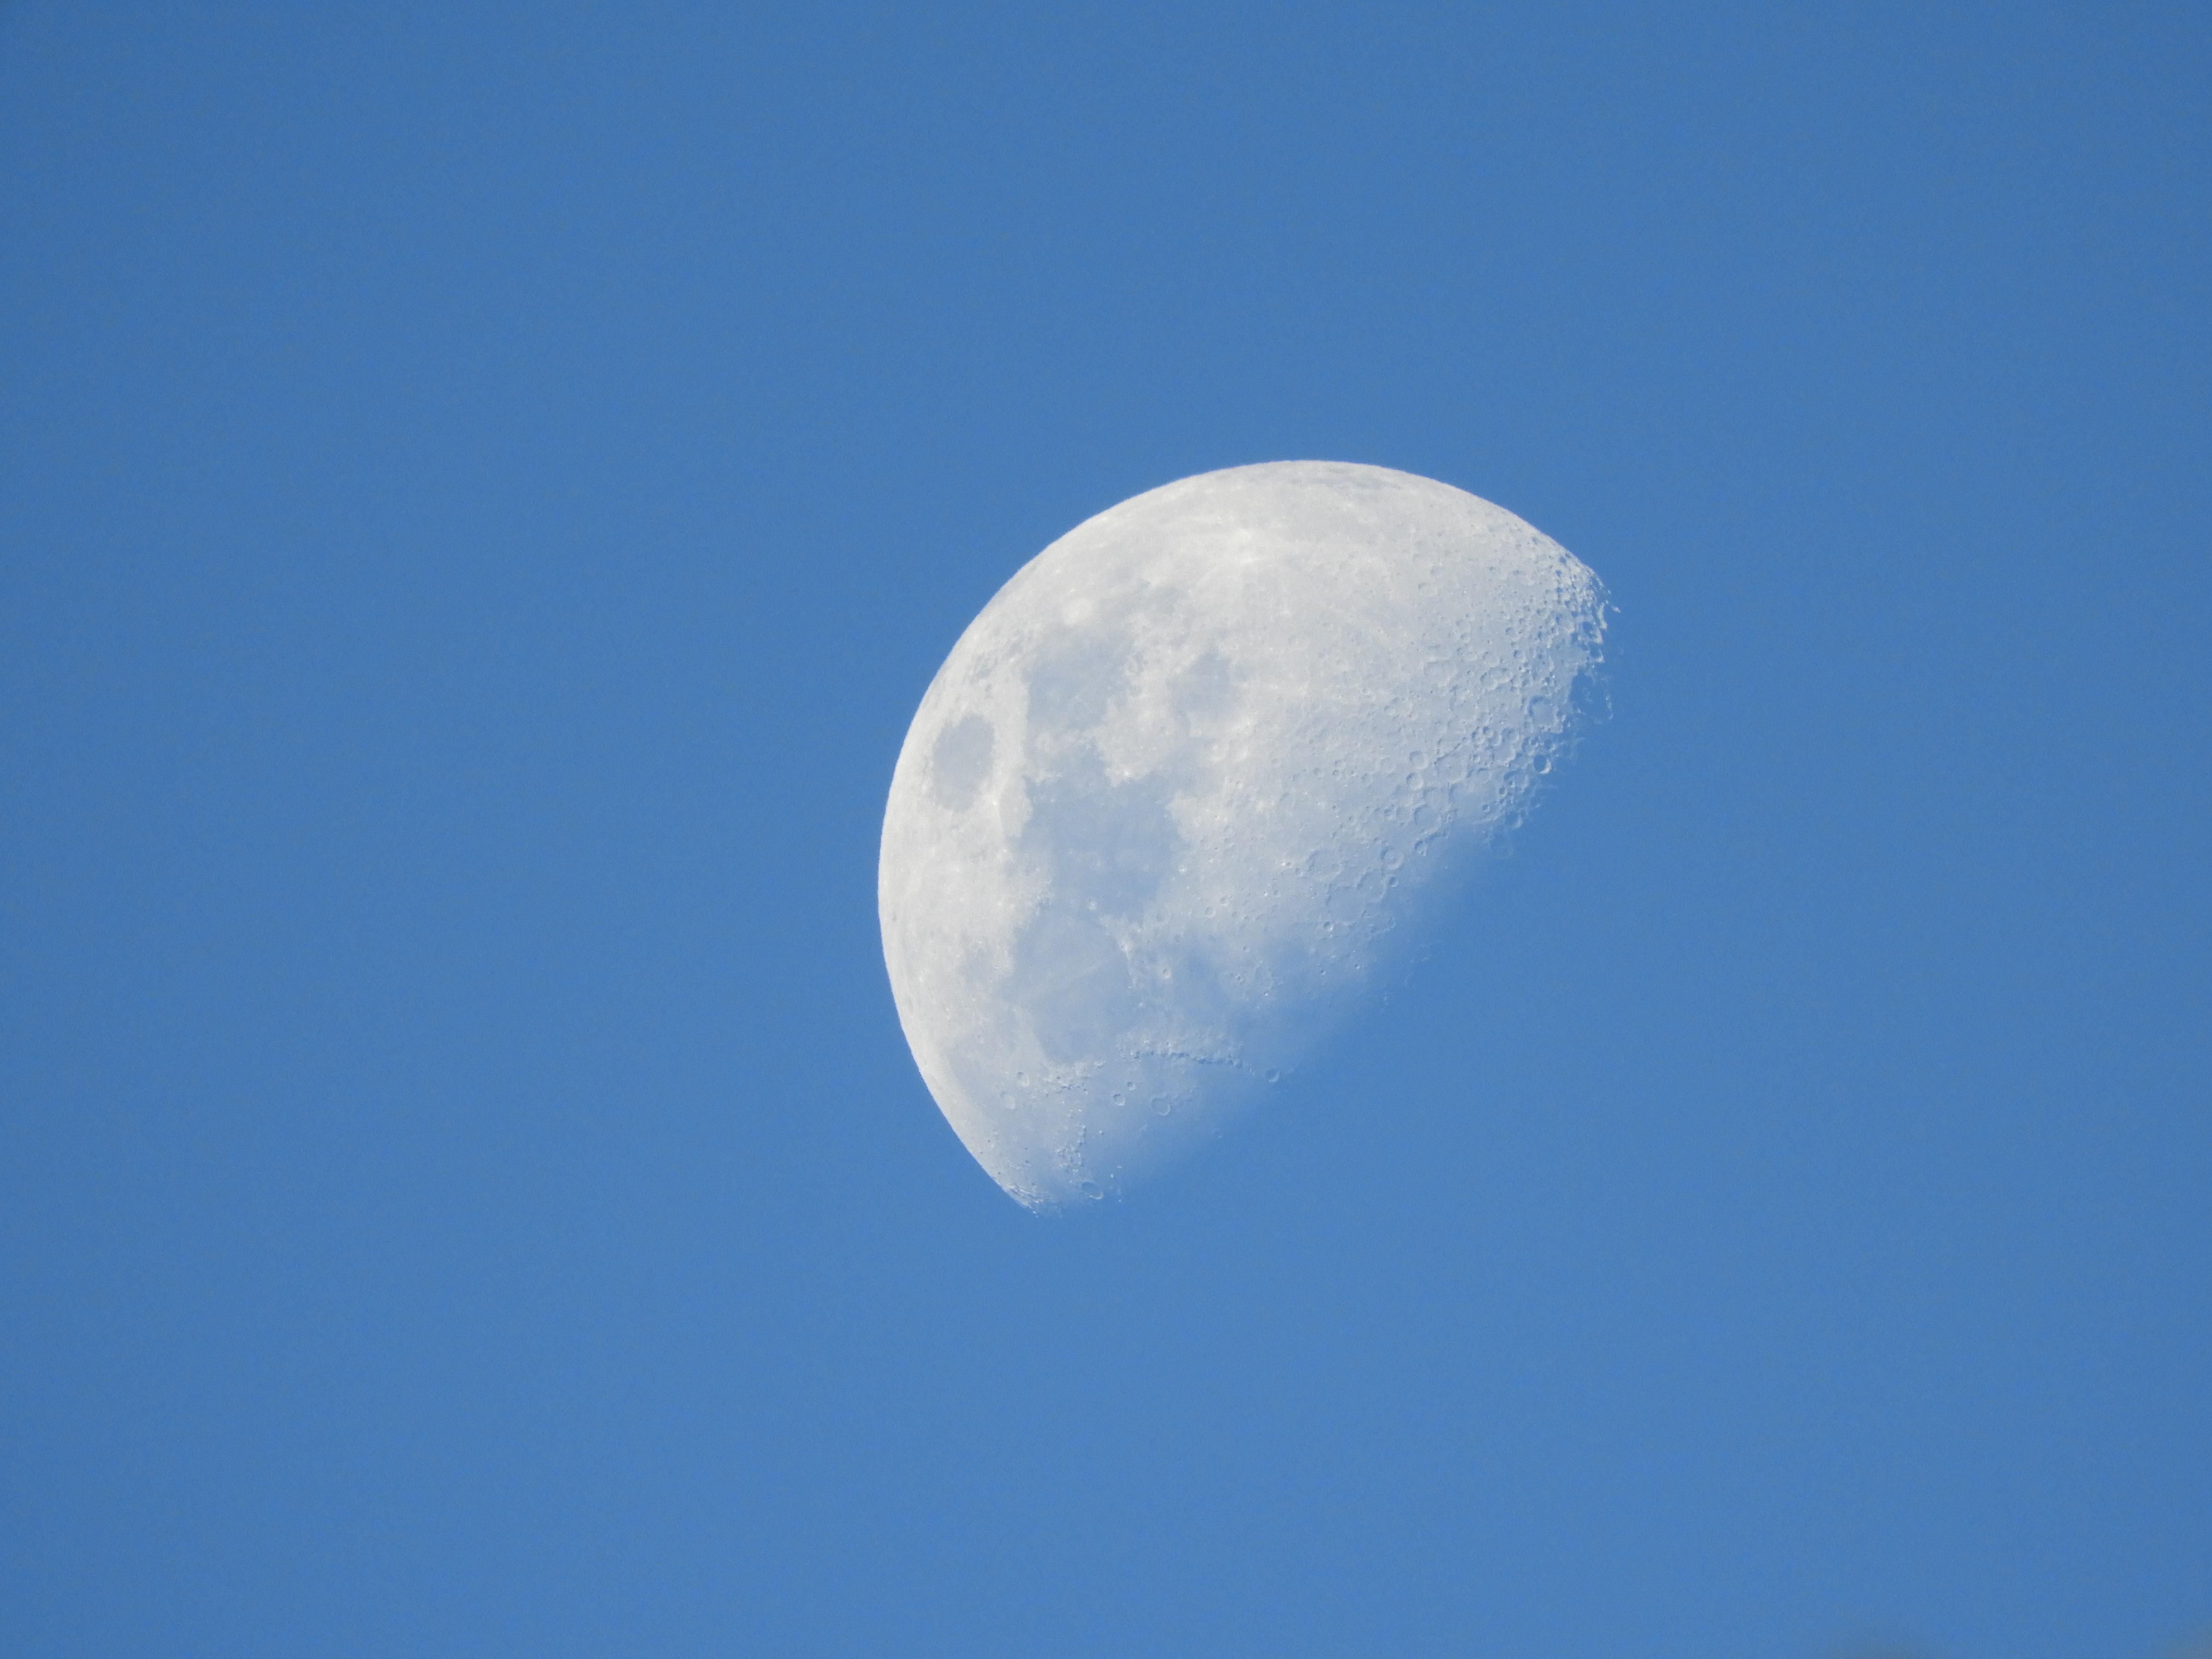 [OC] The beauty of the moon even during the day [4809x3607